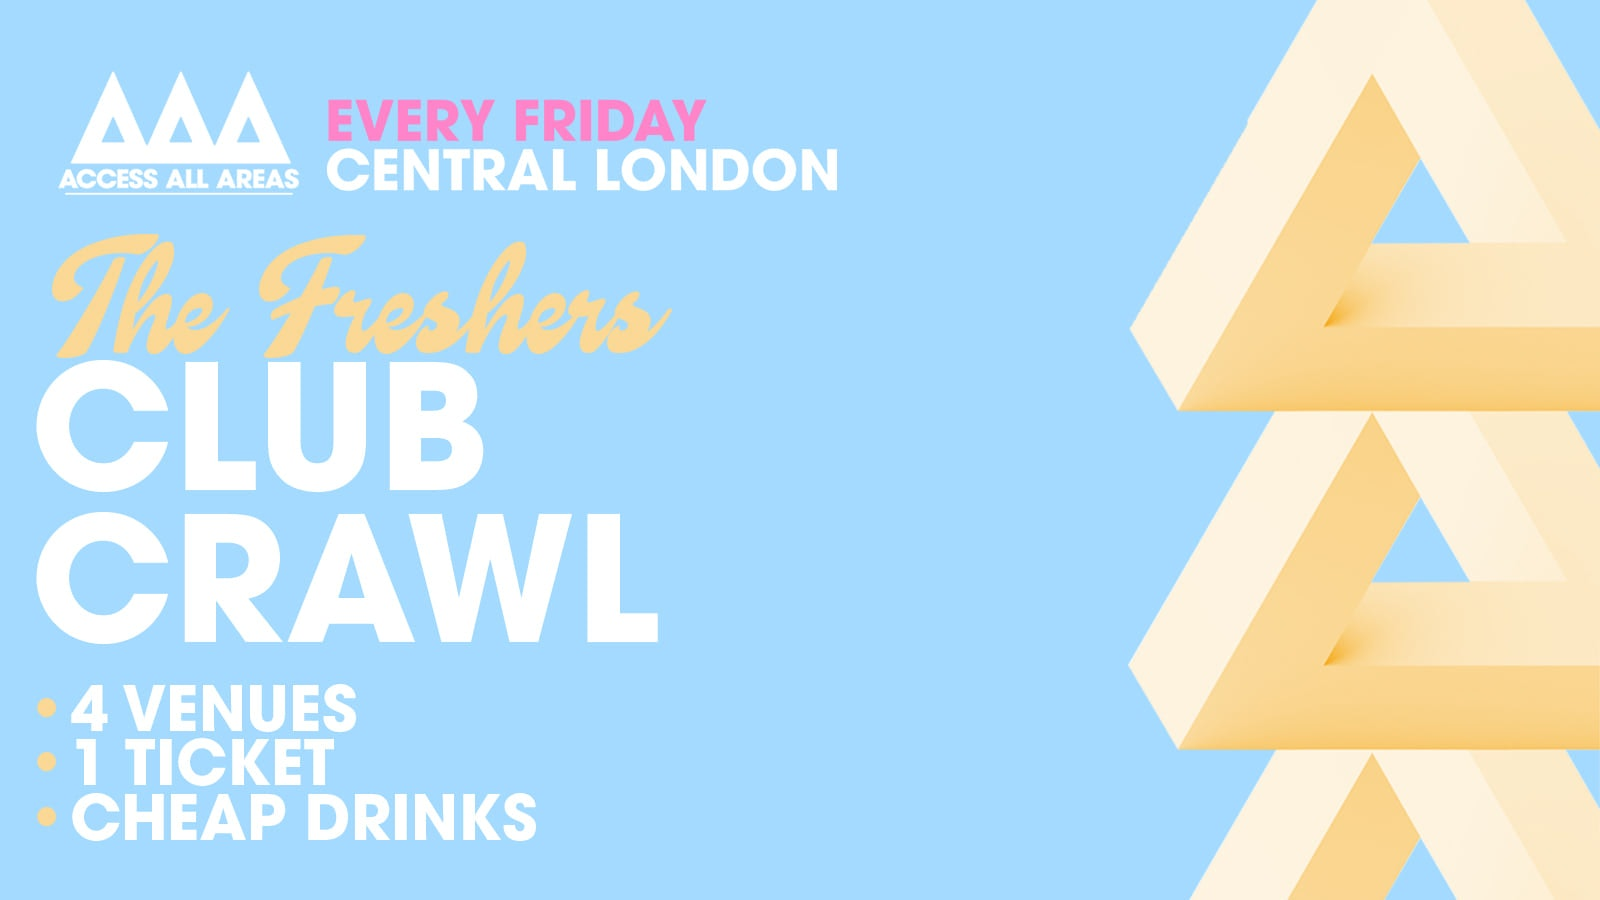 Access All Areas – The Friday Night Club Crawl   £5 Tickets & Cheap Drinks!